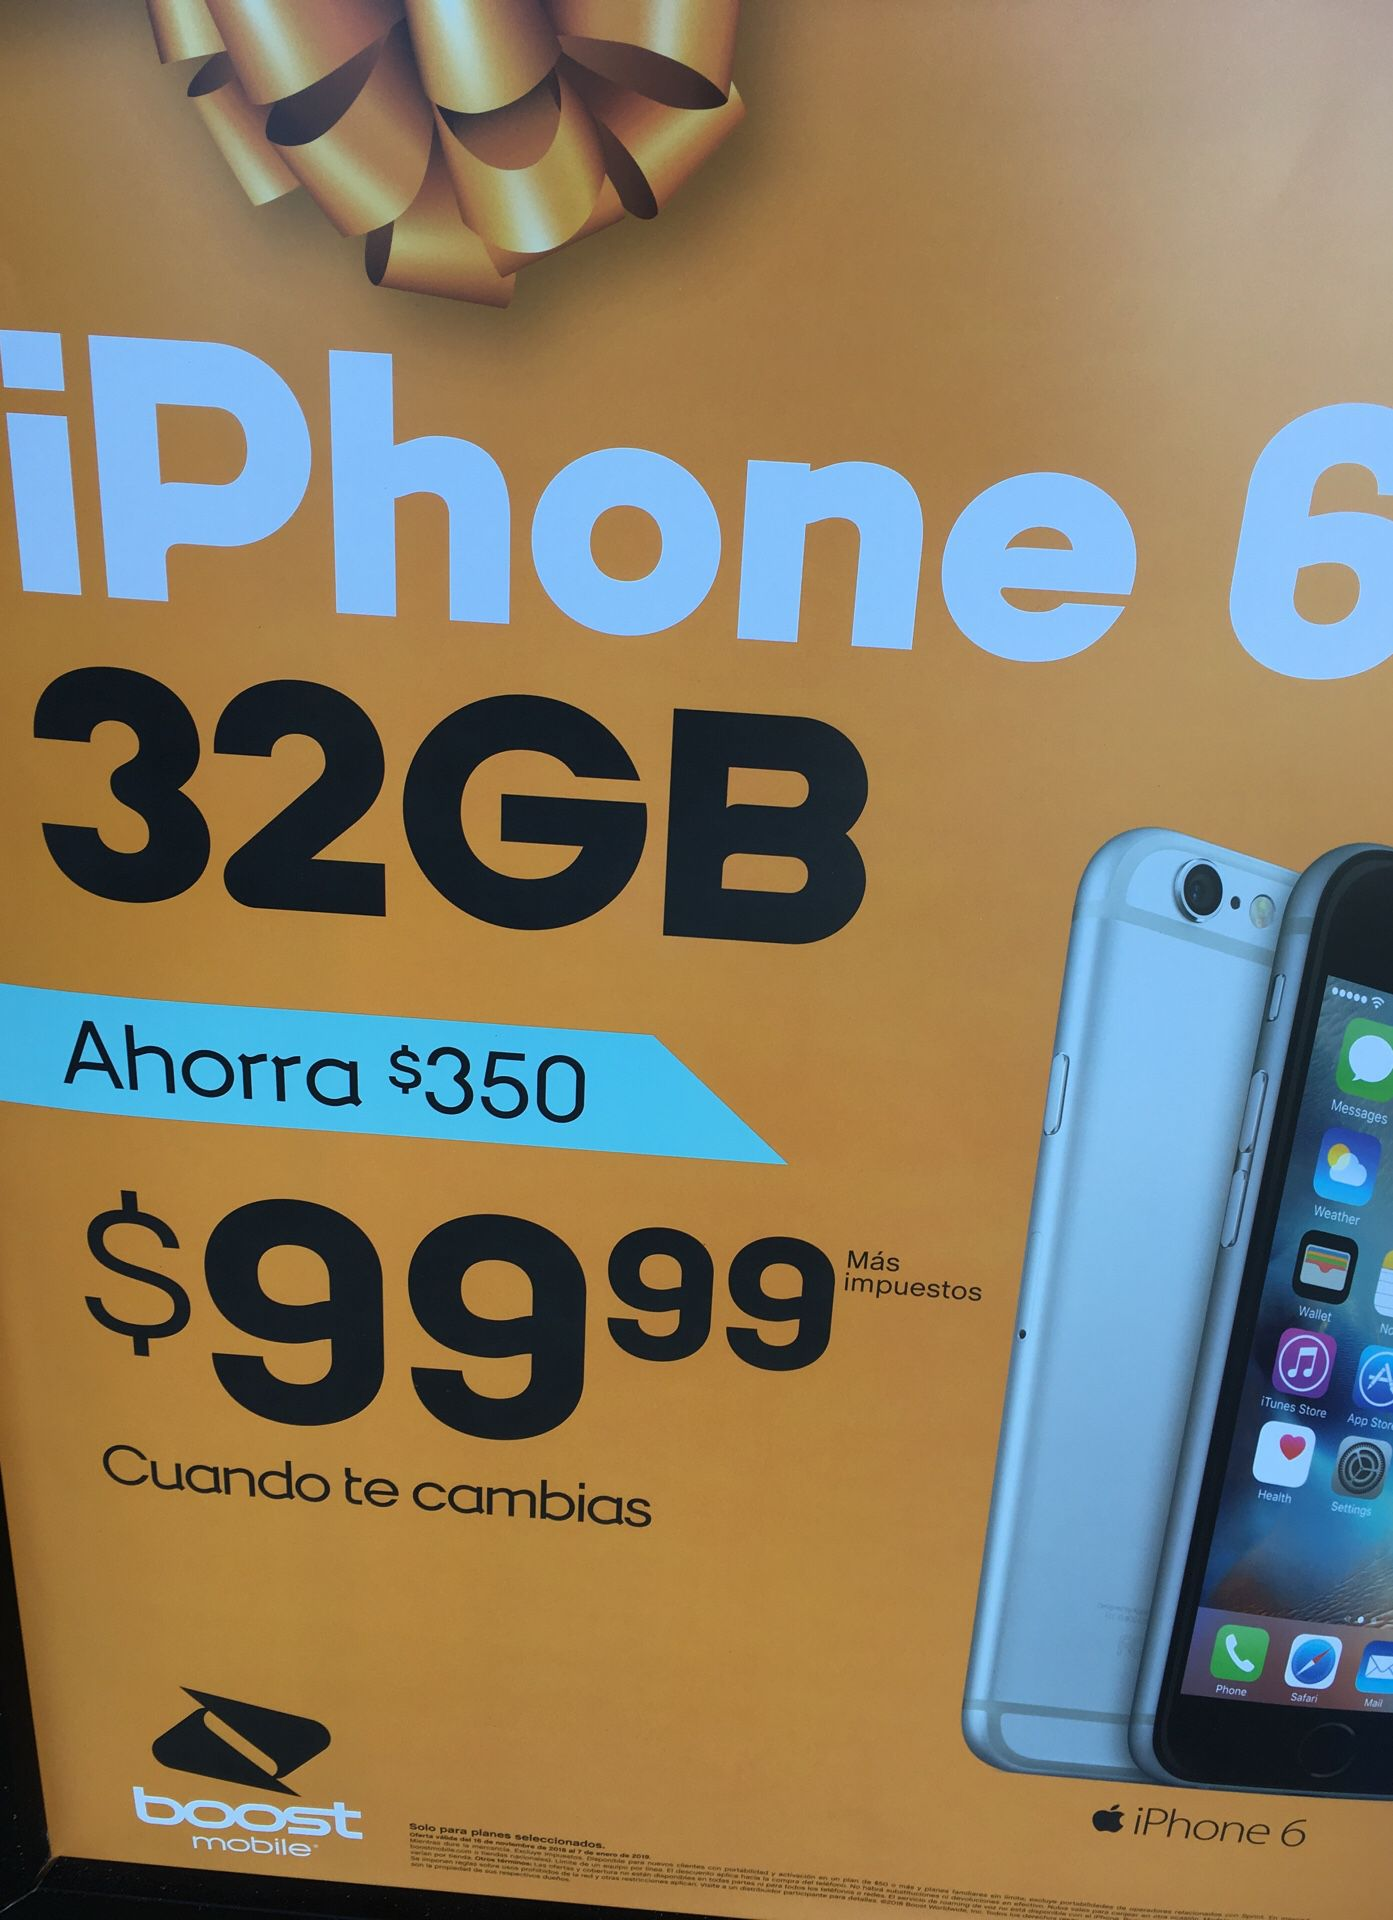 iPhone 6 32gb only $99 when you Switch